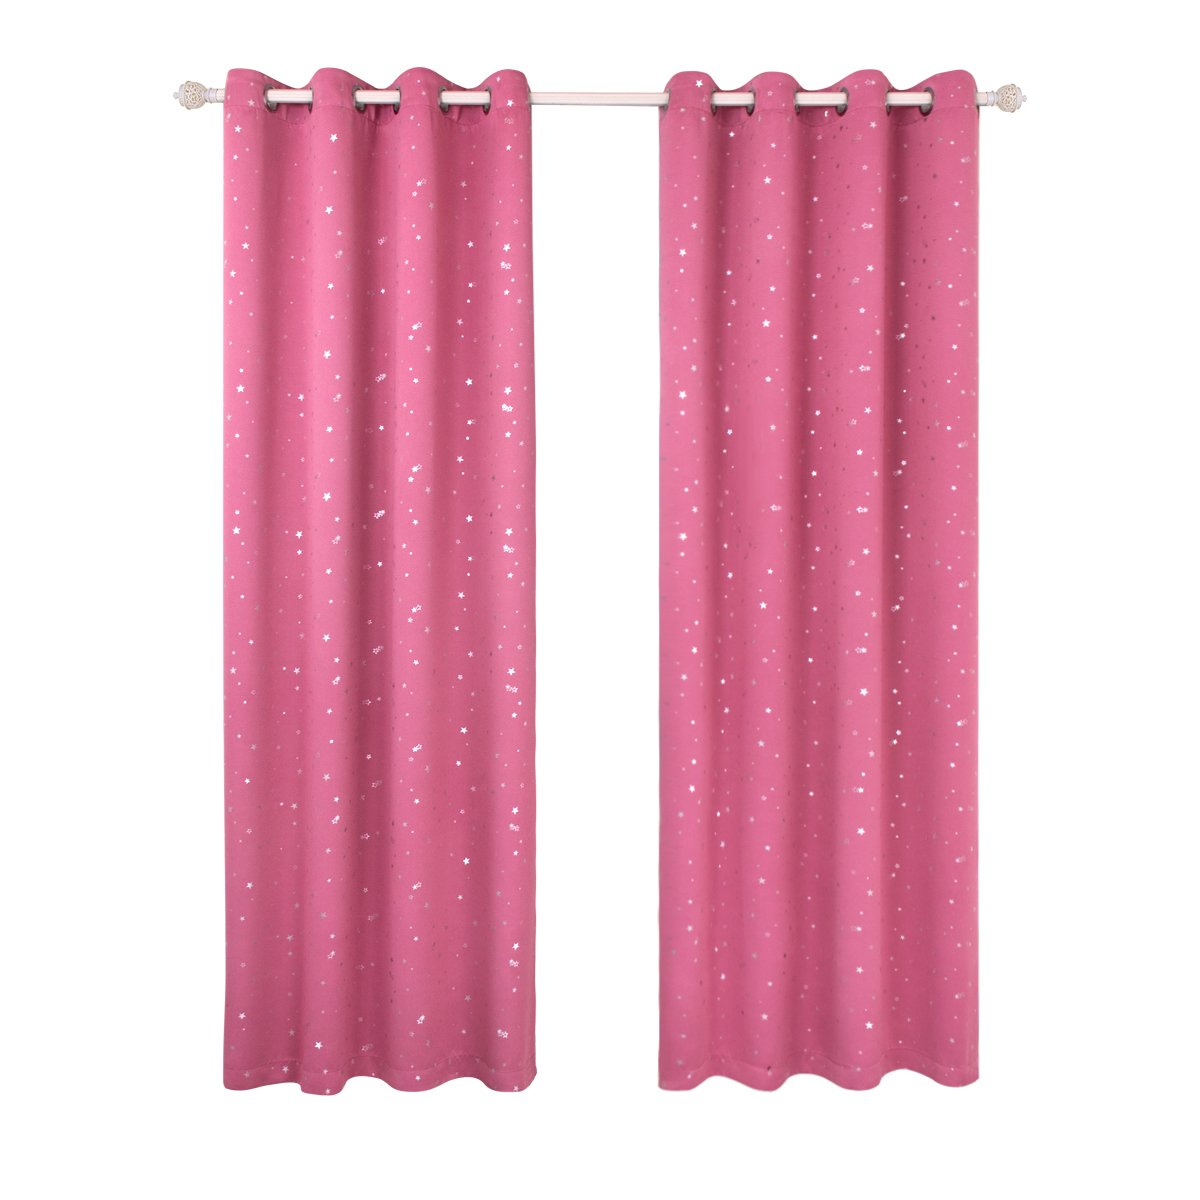 BGment Silver Star Foil Printed Room Darkening Thermal Insulaed Curtains for Bedroom 2 Panels, Grommets Top (42'' Wx84''L Each Panel,Pink)